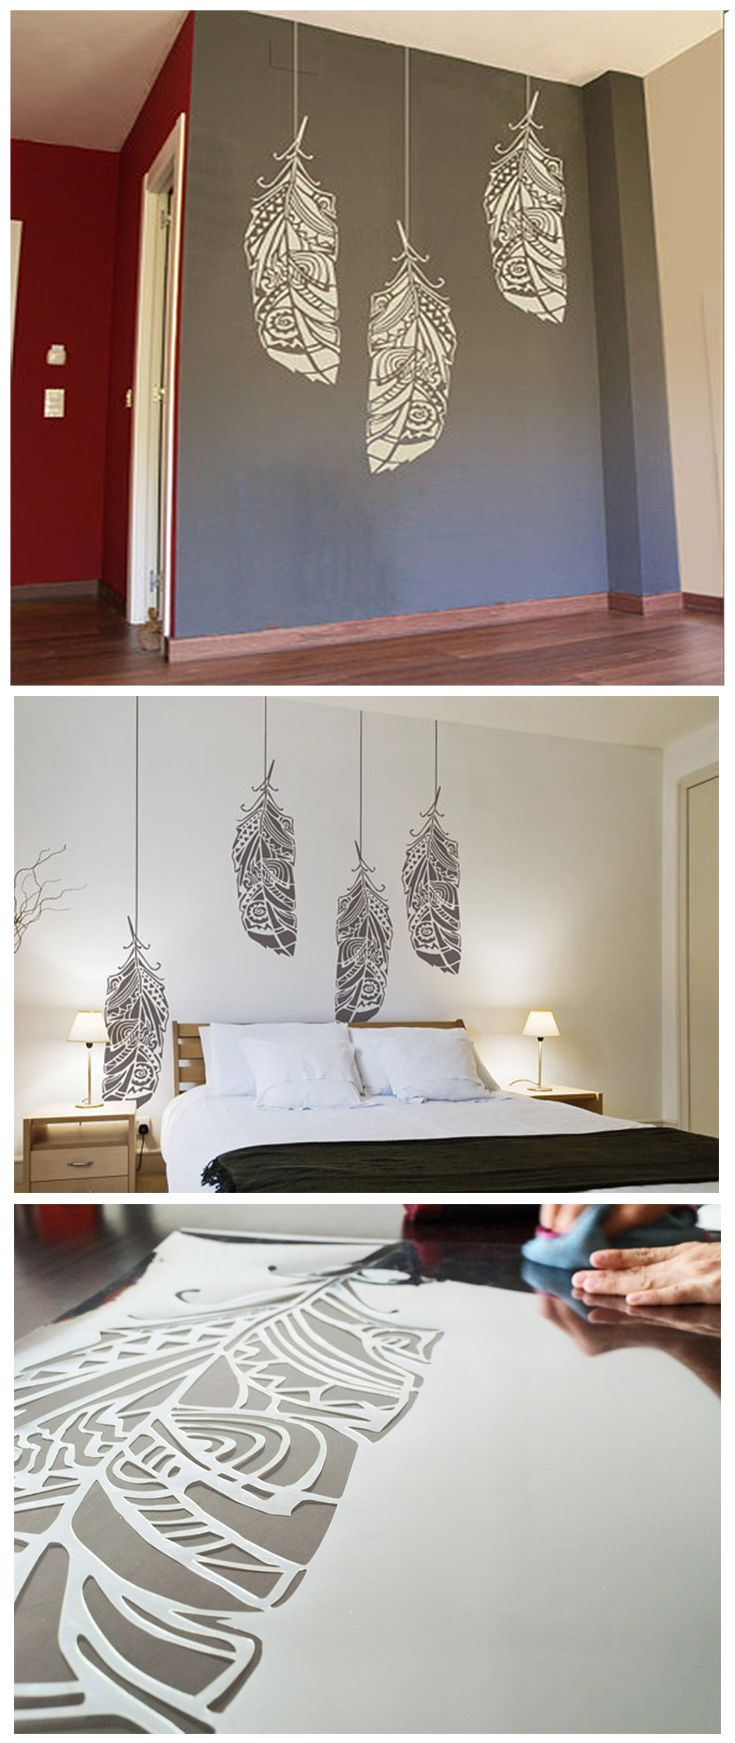 Simple Bedroom Wall Painting 17 Best Ideas About Creative Wall Painting On Pinterest Wall